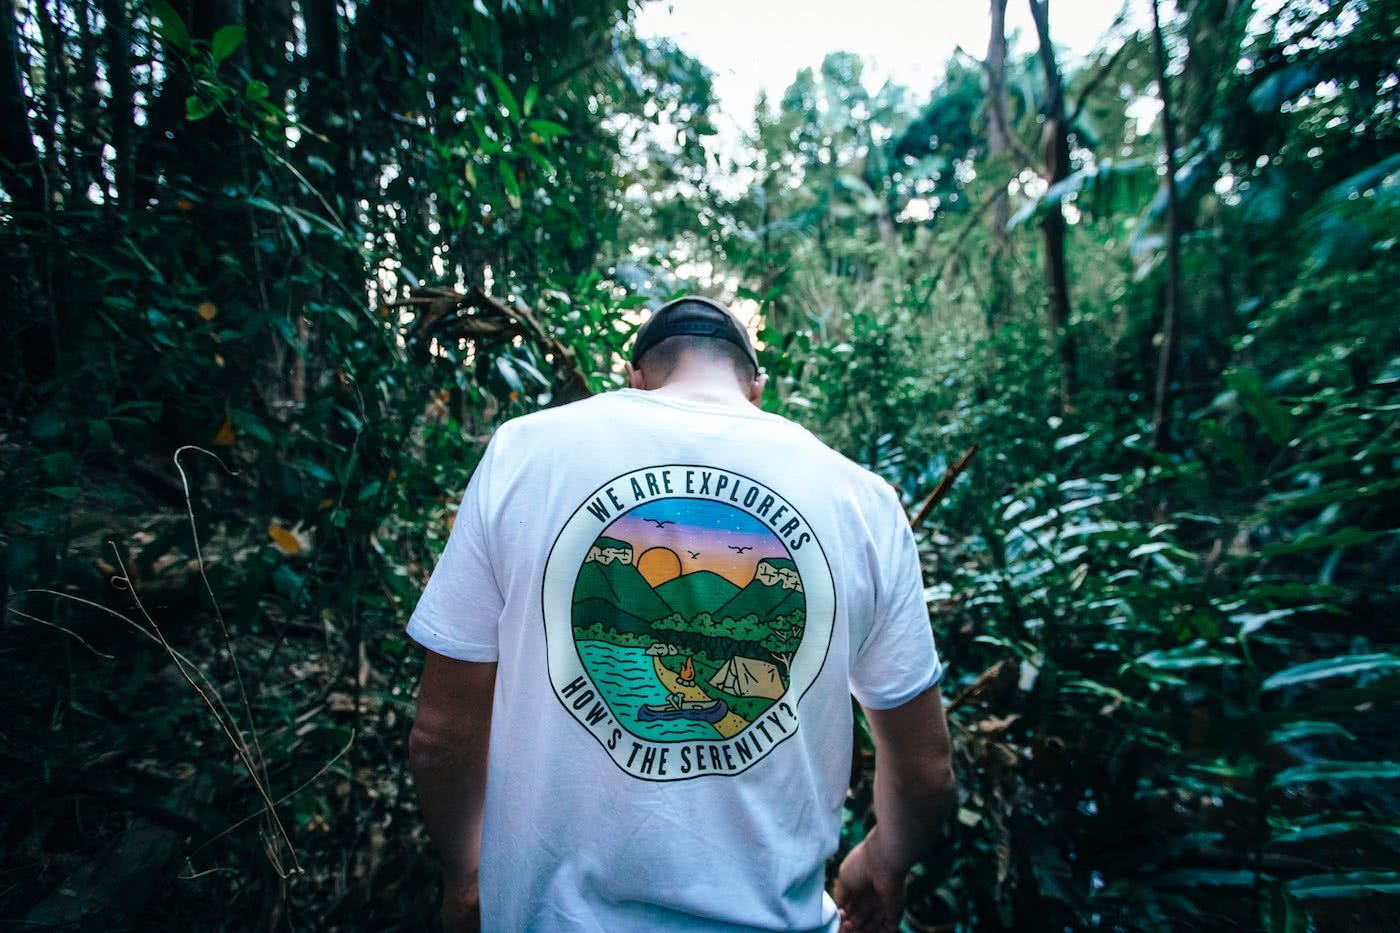 We Are Explorers Merch Store is Live, by Mattie Gould, WAE merch, serenity tee in the wild